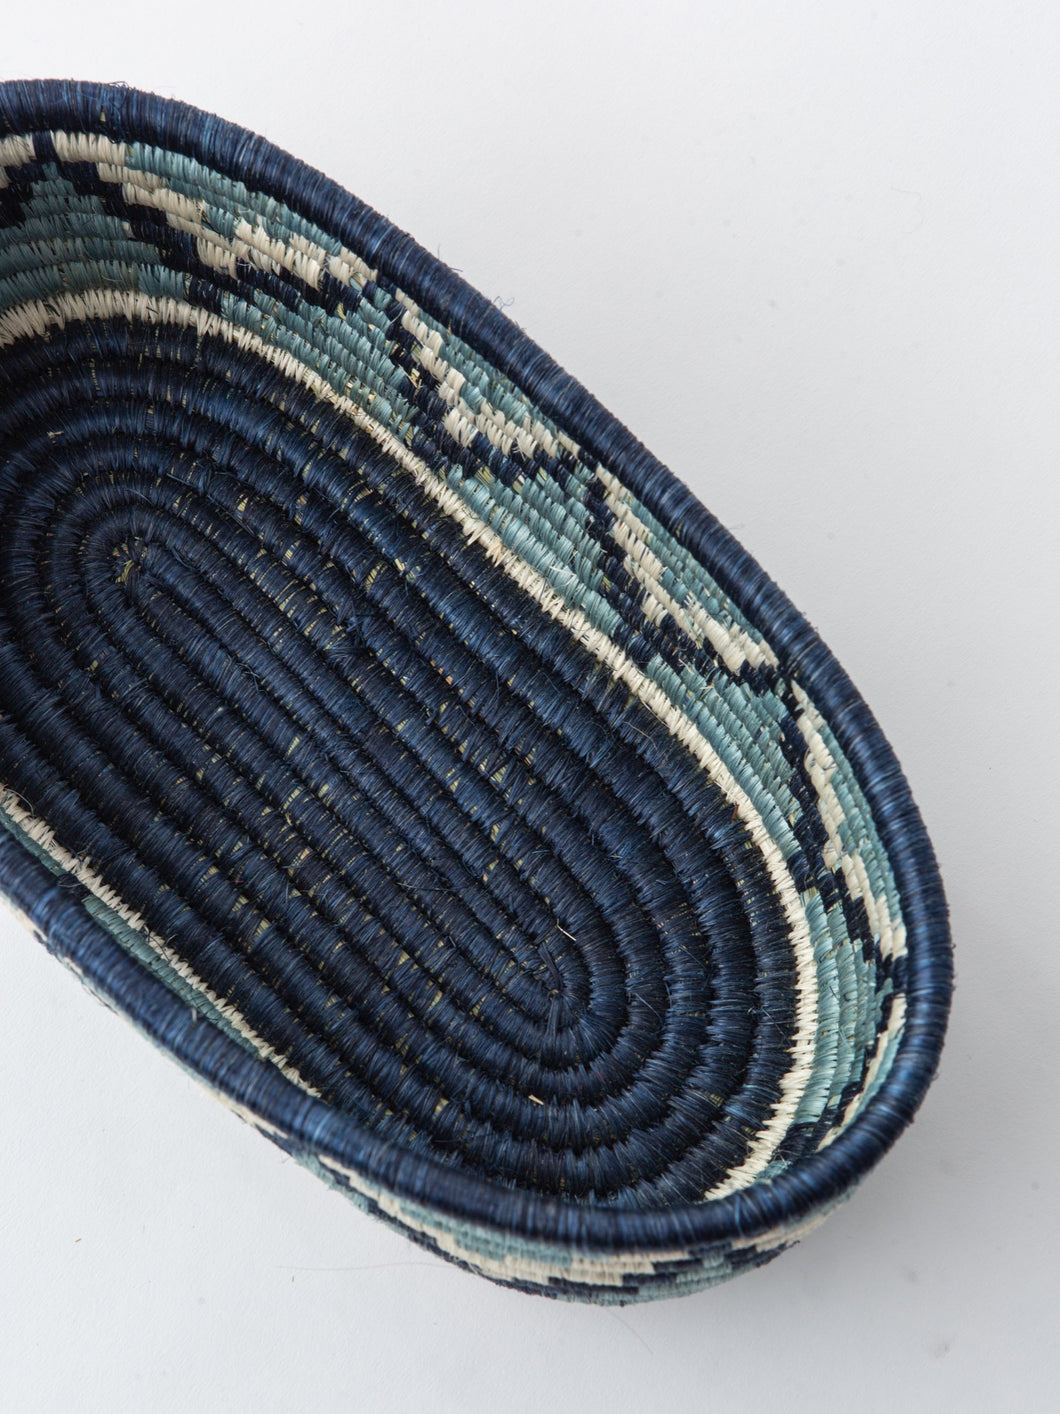 Oval Basket in Navy and Light Blue